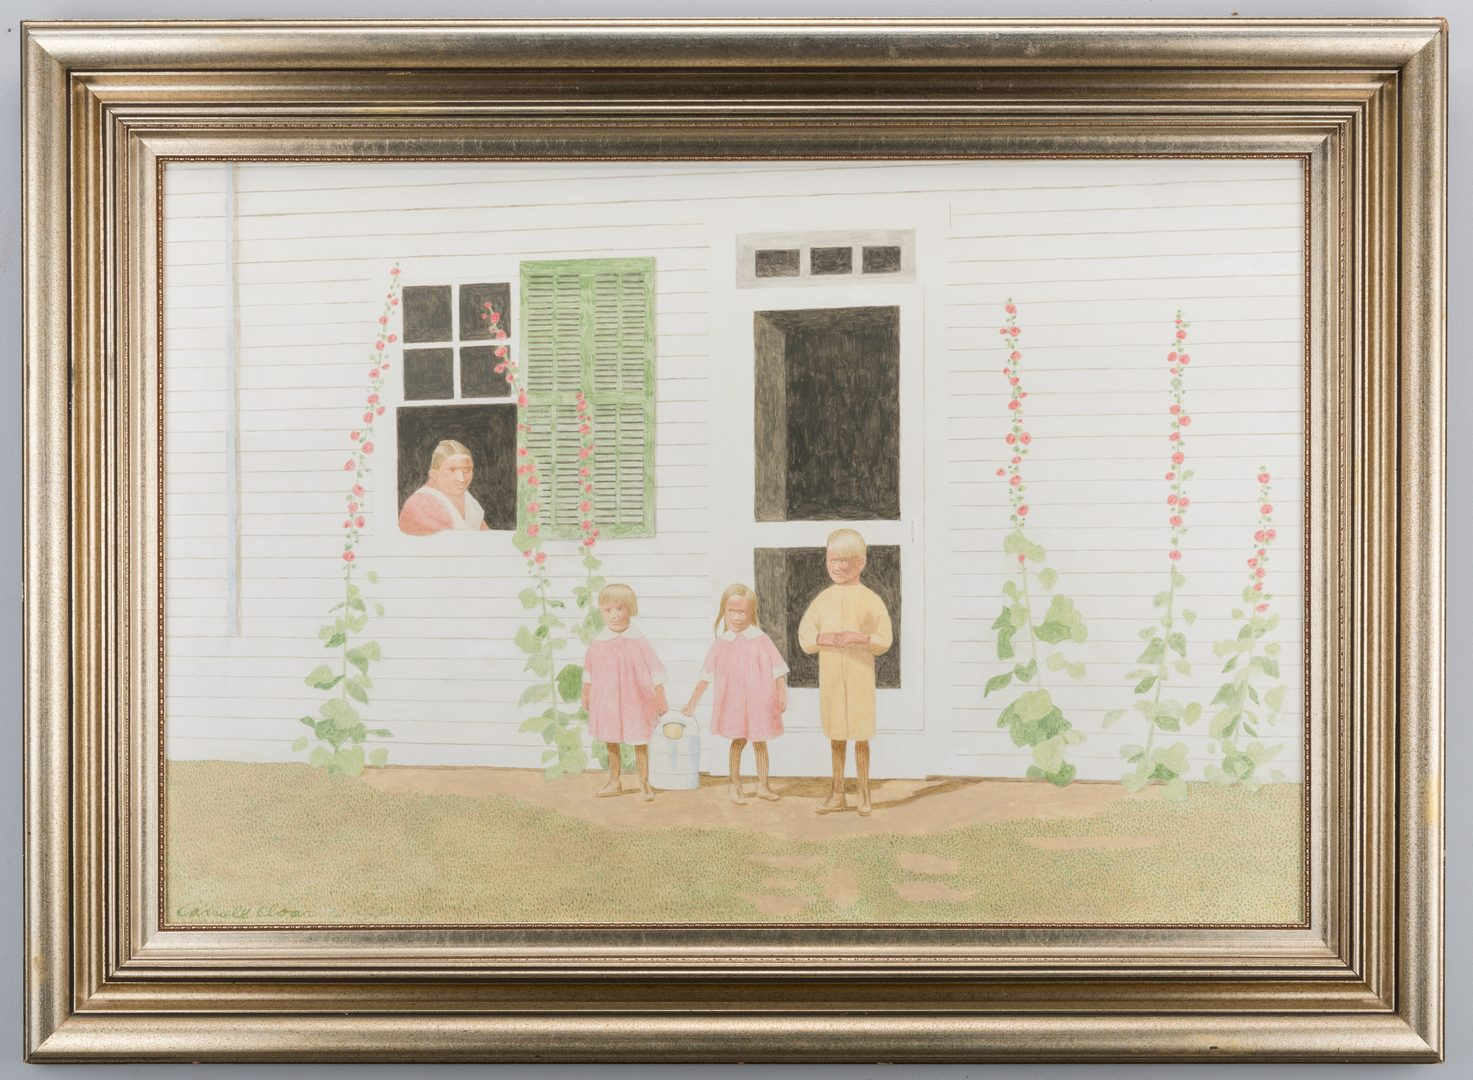 Lot 181: Carroll Cloar painting, The Watering Detail